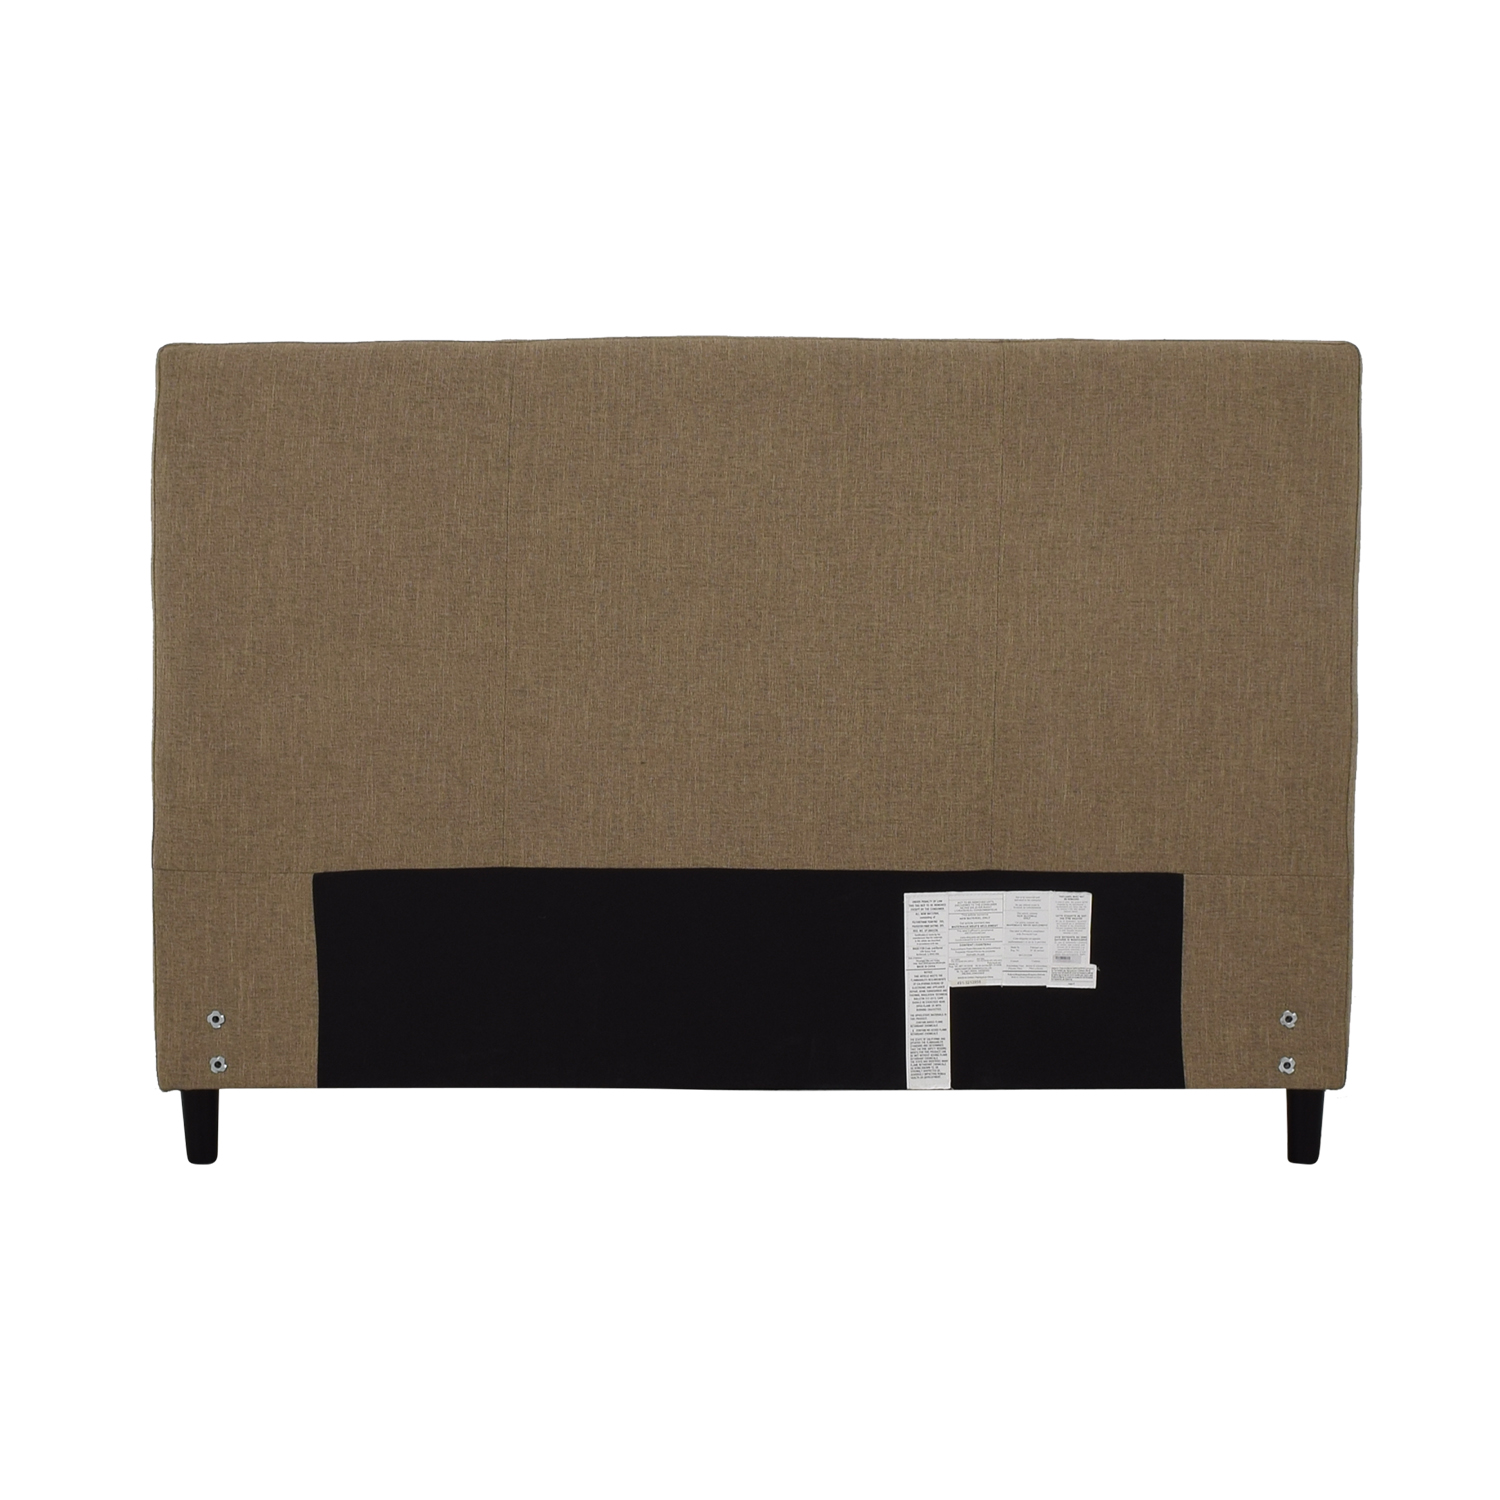 shop Crate & Barrel Lowe Khaki Upholstered Queen Headboard Crate & Barrel Headboards